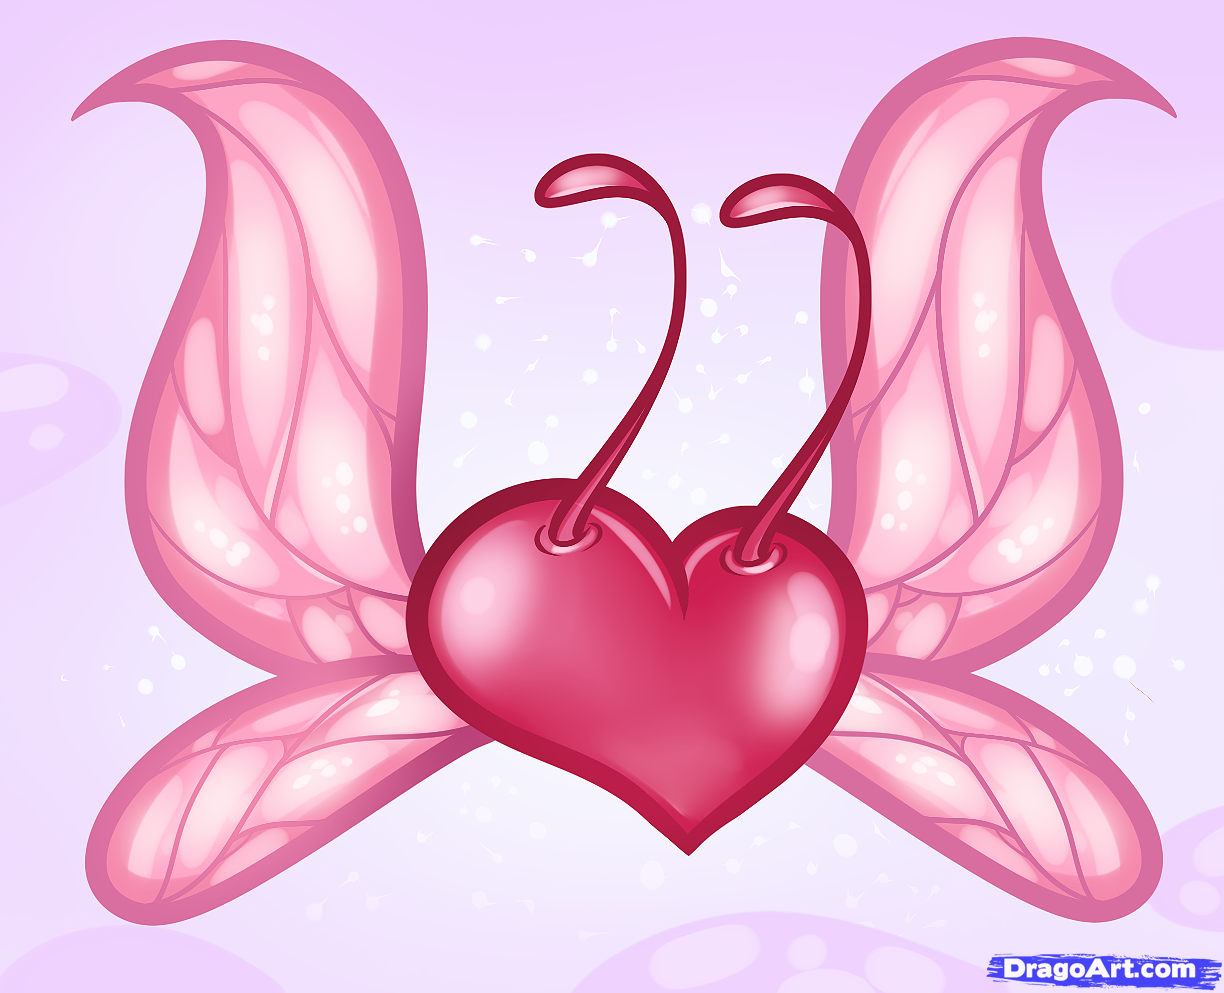 Images For > How To Draw A Heart With Wings And A Rose Step By Step